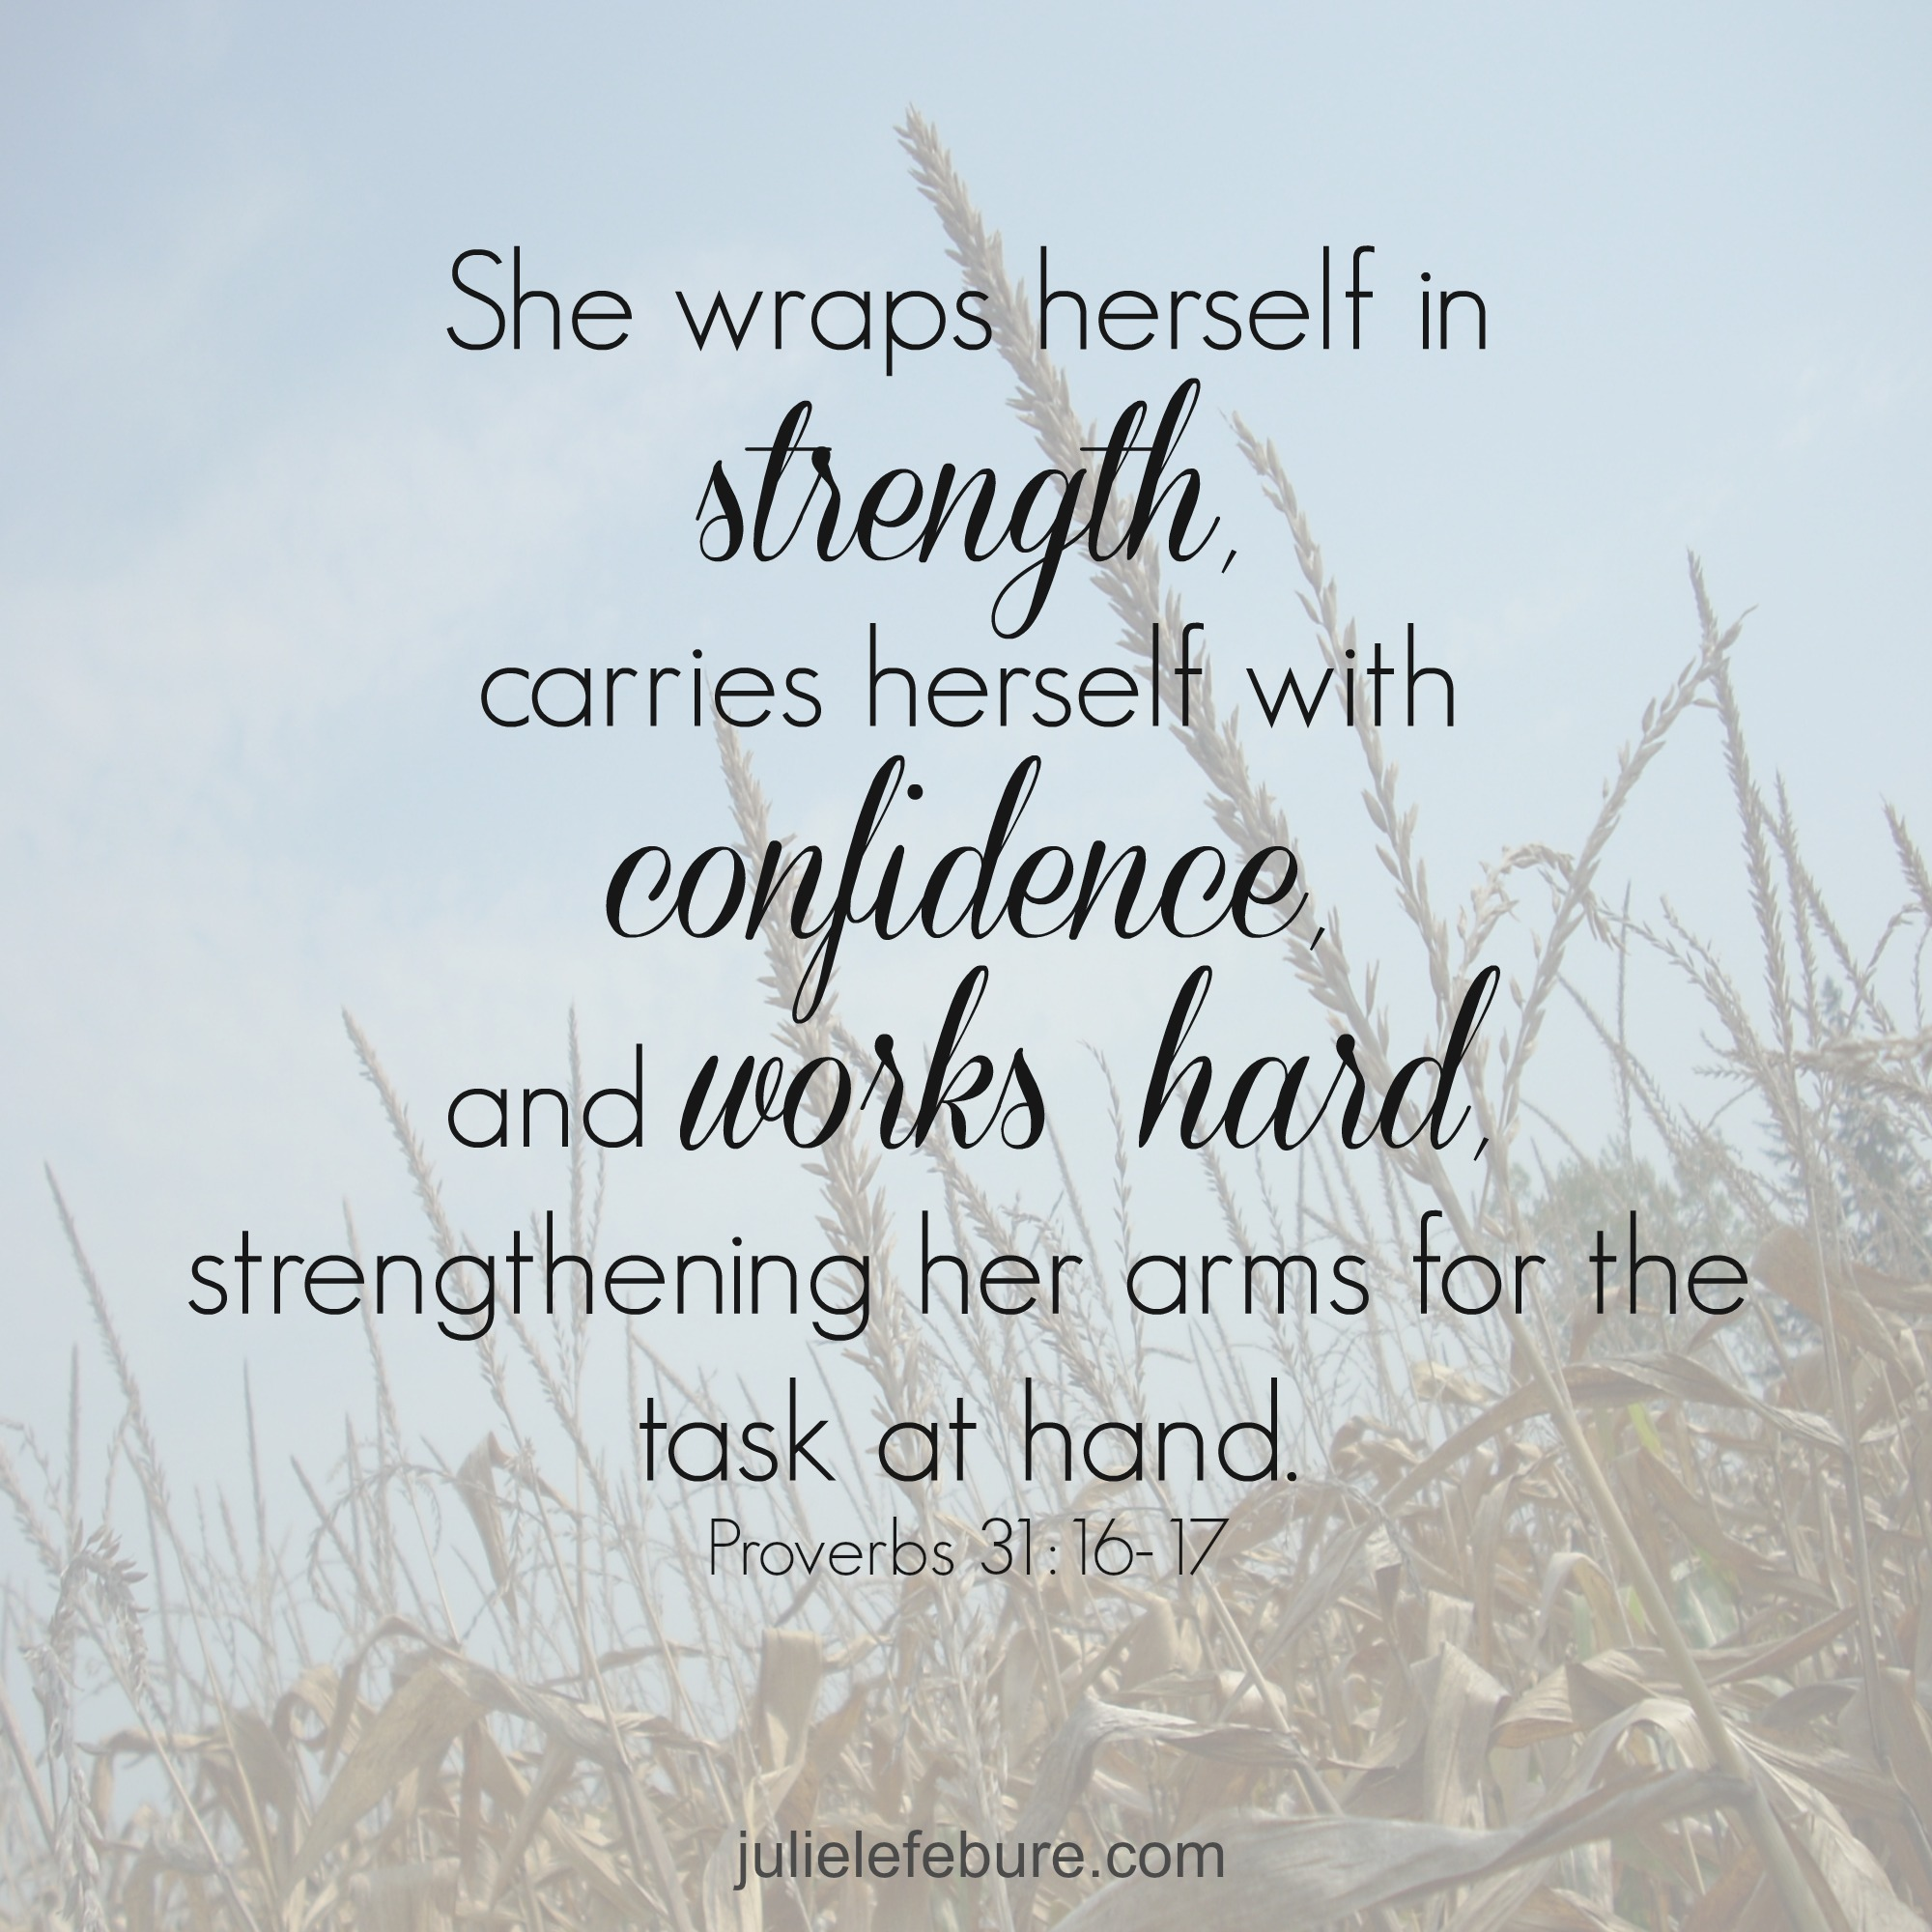 Proverbs About Strong Woman Long Image: A Strong, Confident & Hard-Working Woman